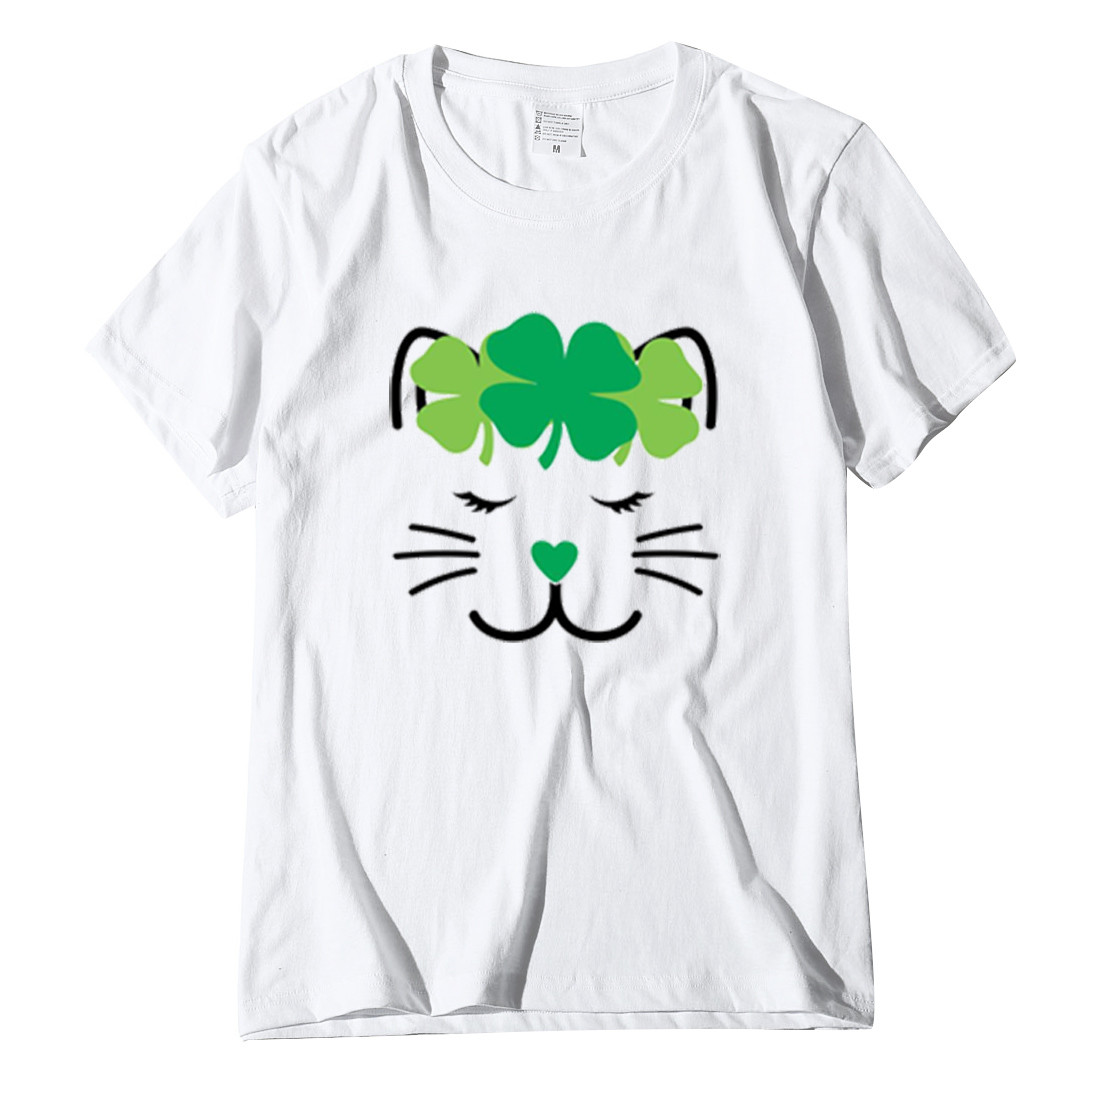 Women's ST. Patrick's Day T-Shirt New Green O-Neck Short Sleeve Tunics Fashion Spring Summer Leisure Loose Everyday куртка YL5